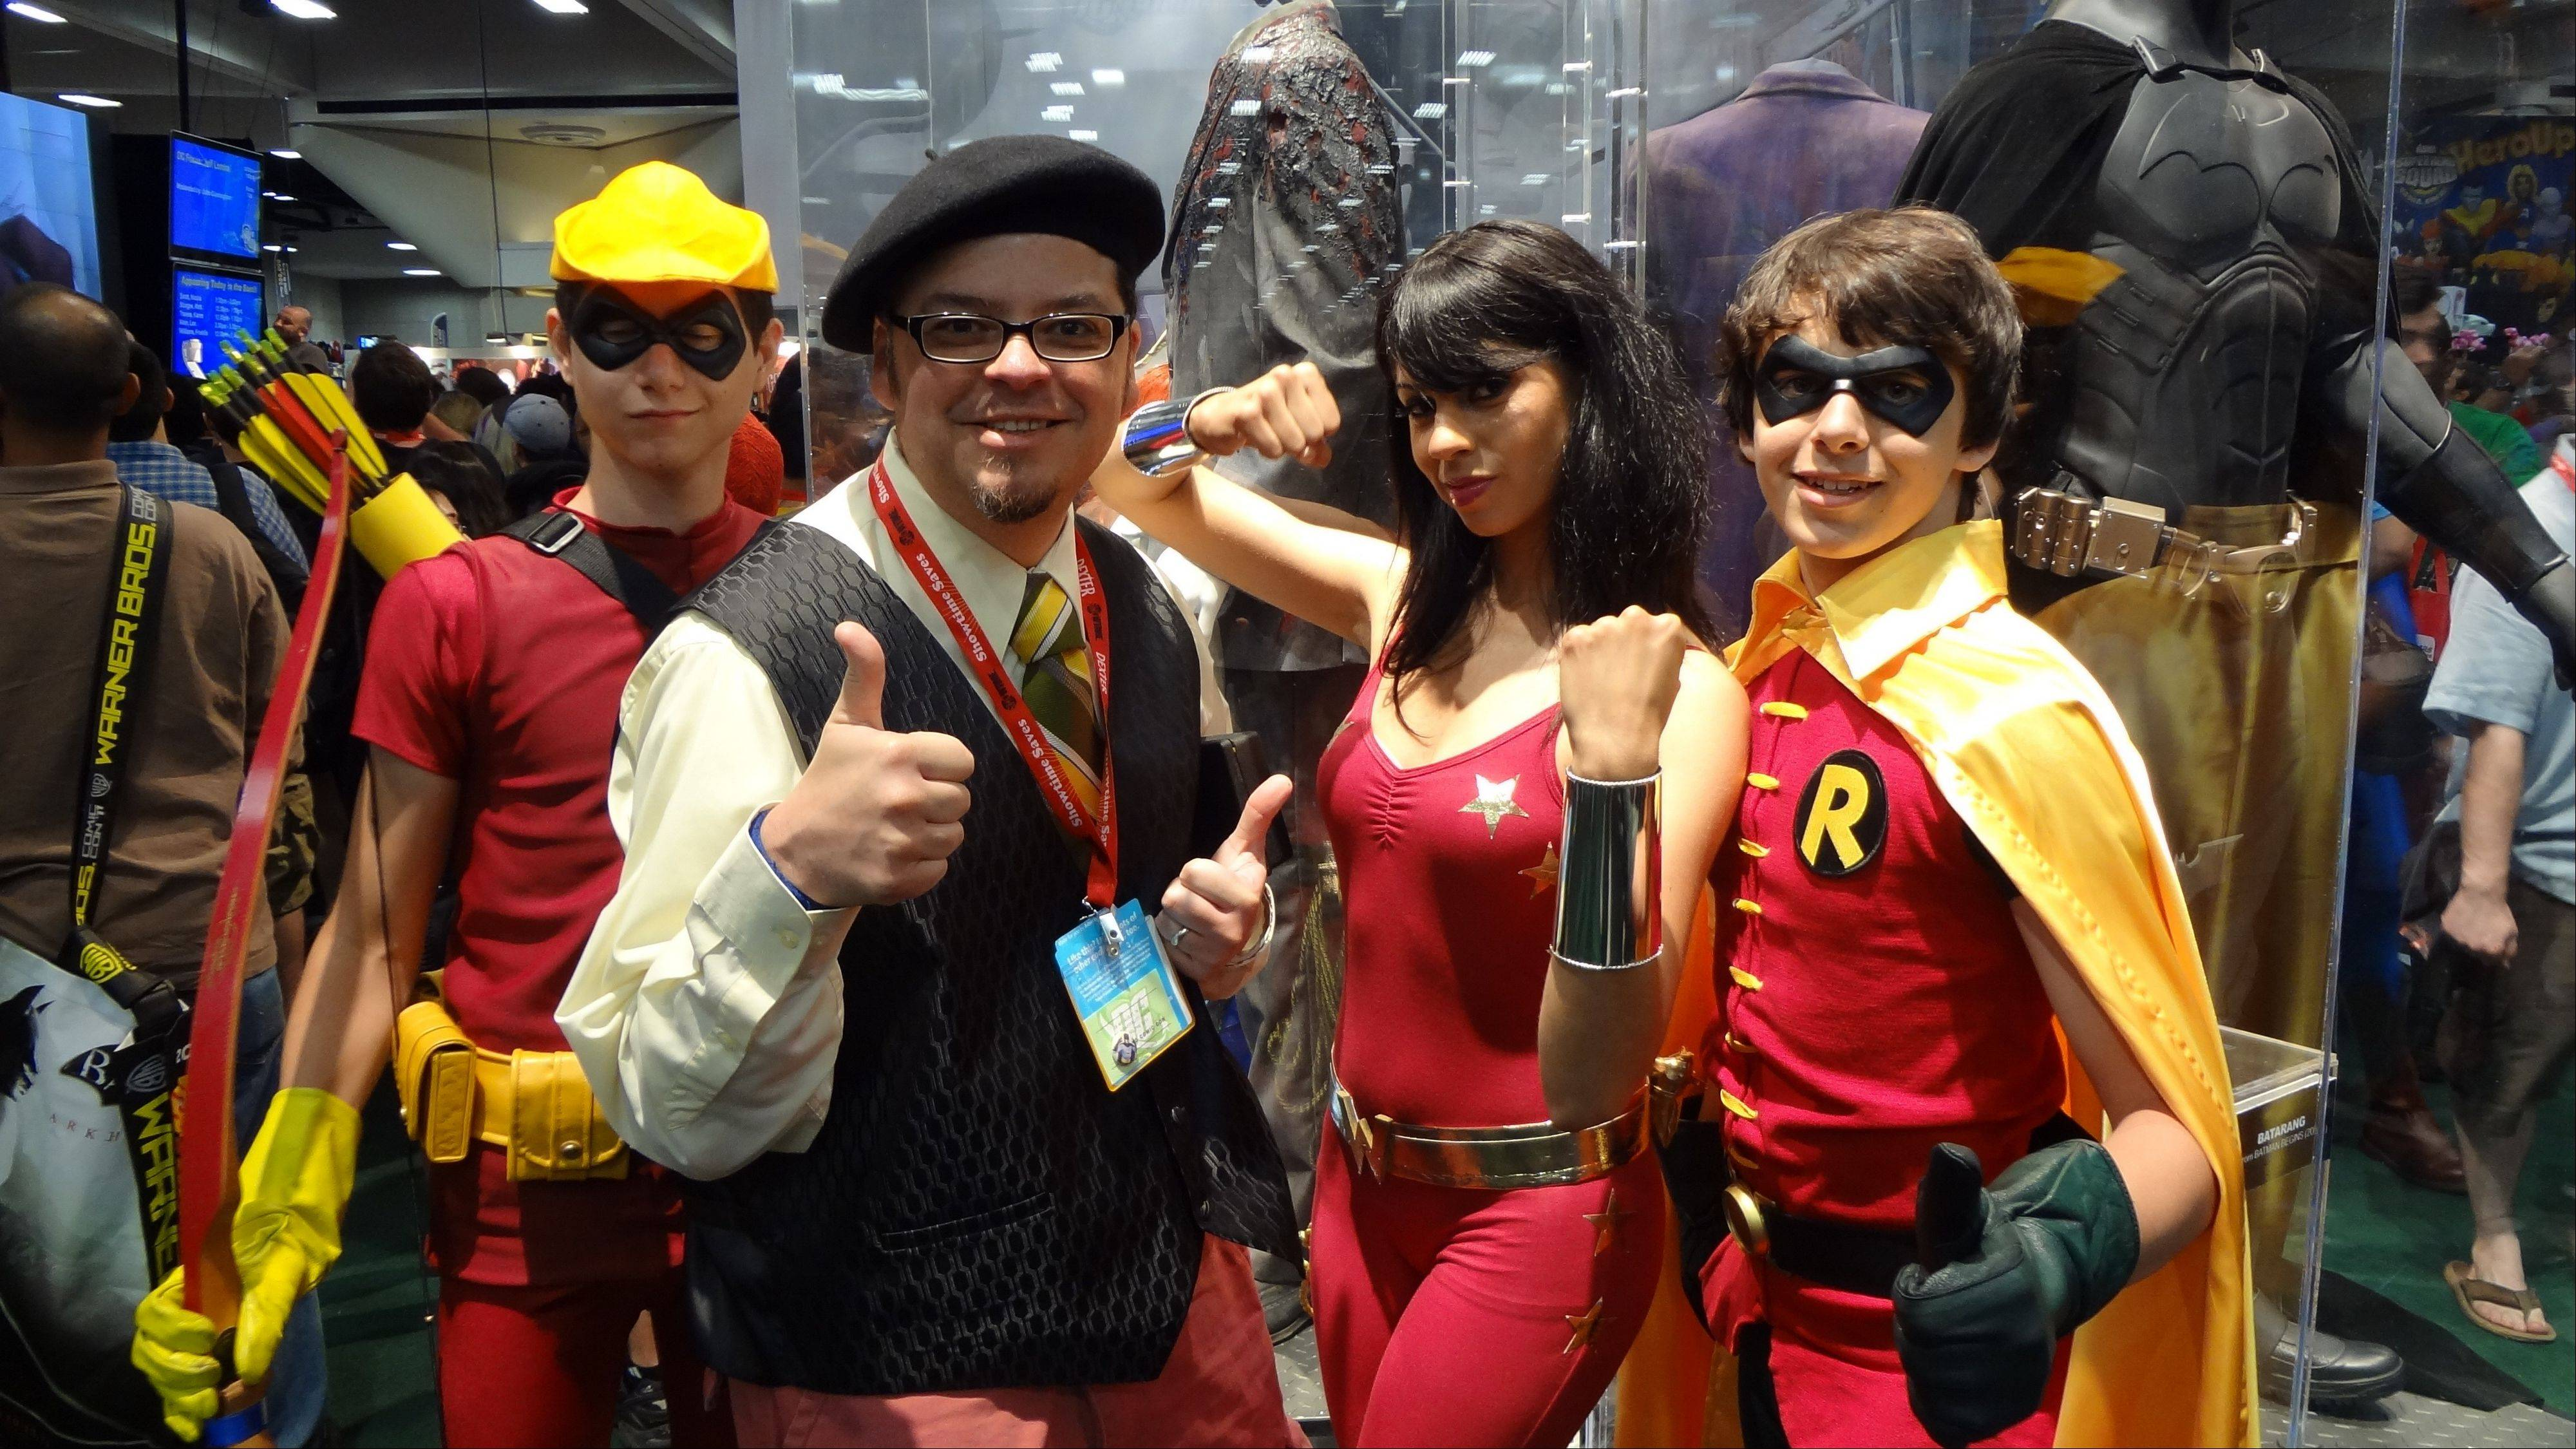 Art Baltazar of Streamwood poses at the San Diego Comic-Con with fans dressed up as the Teen Titans. These DC Comics characters are Speedy, Wonder Girl and Robin.